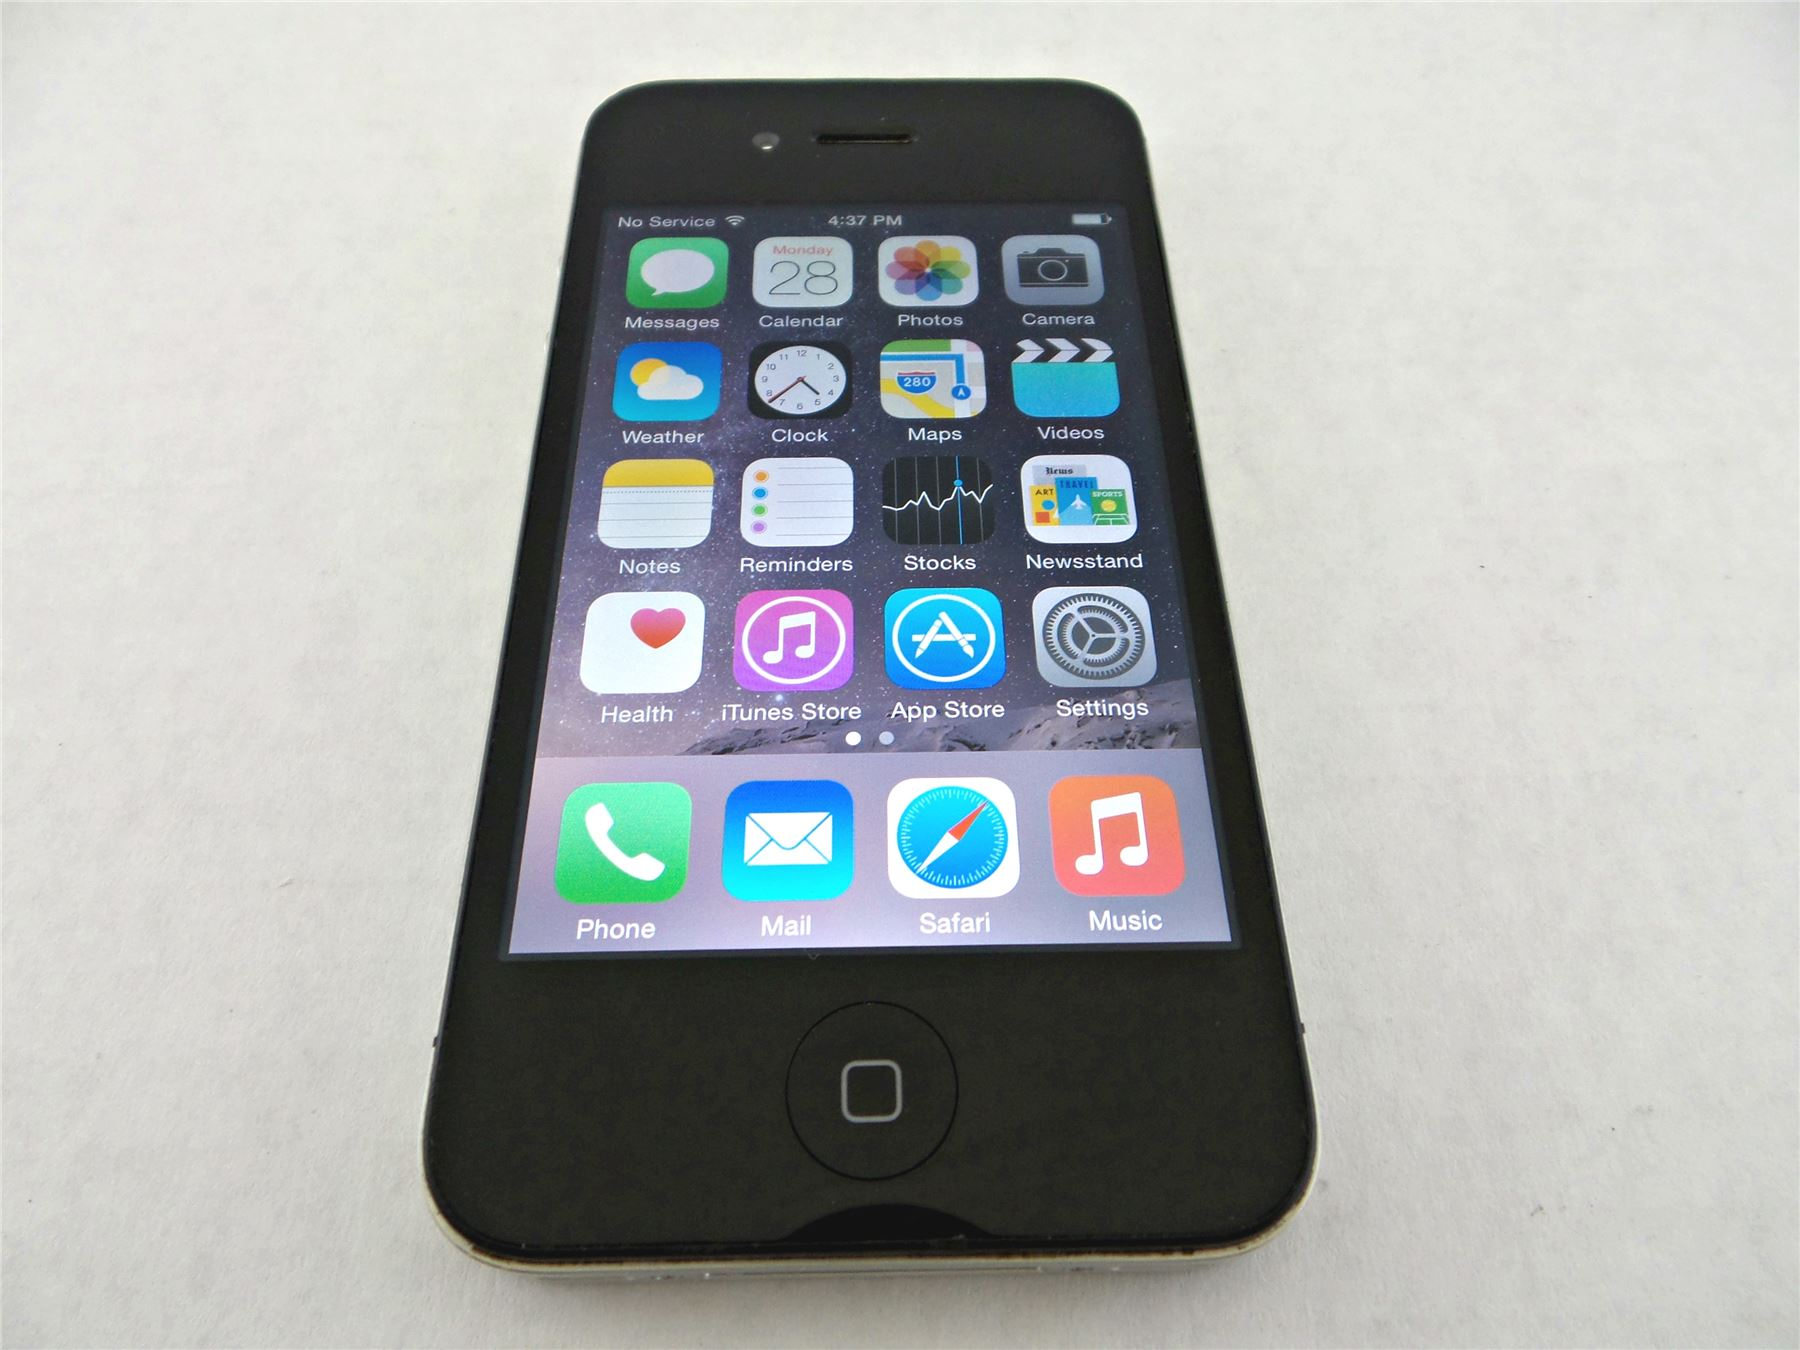 Sep 11, · The prices are higher than Verizon currently offers for trade-ins. For example, trading in a 16GB iPhone 4S under the current program garners only $15 in the current program.